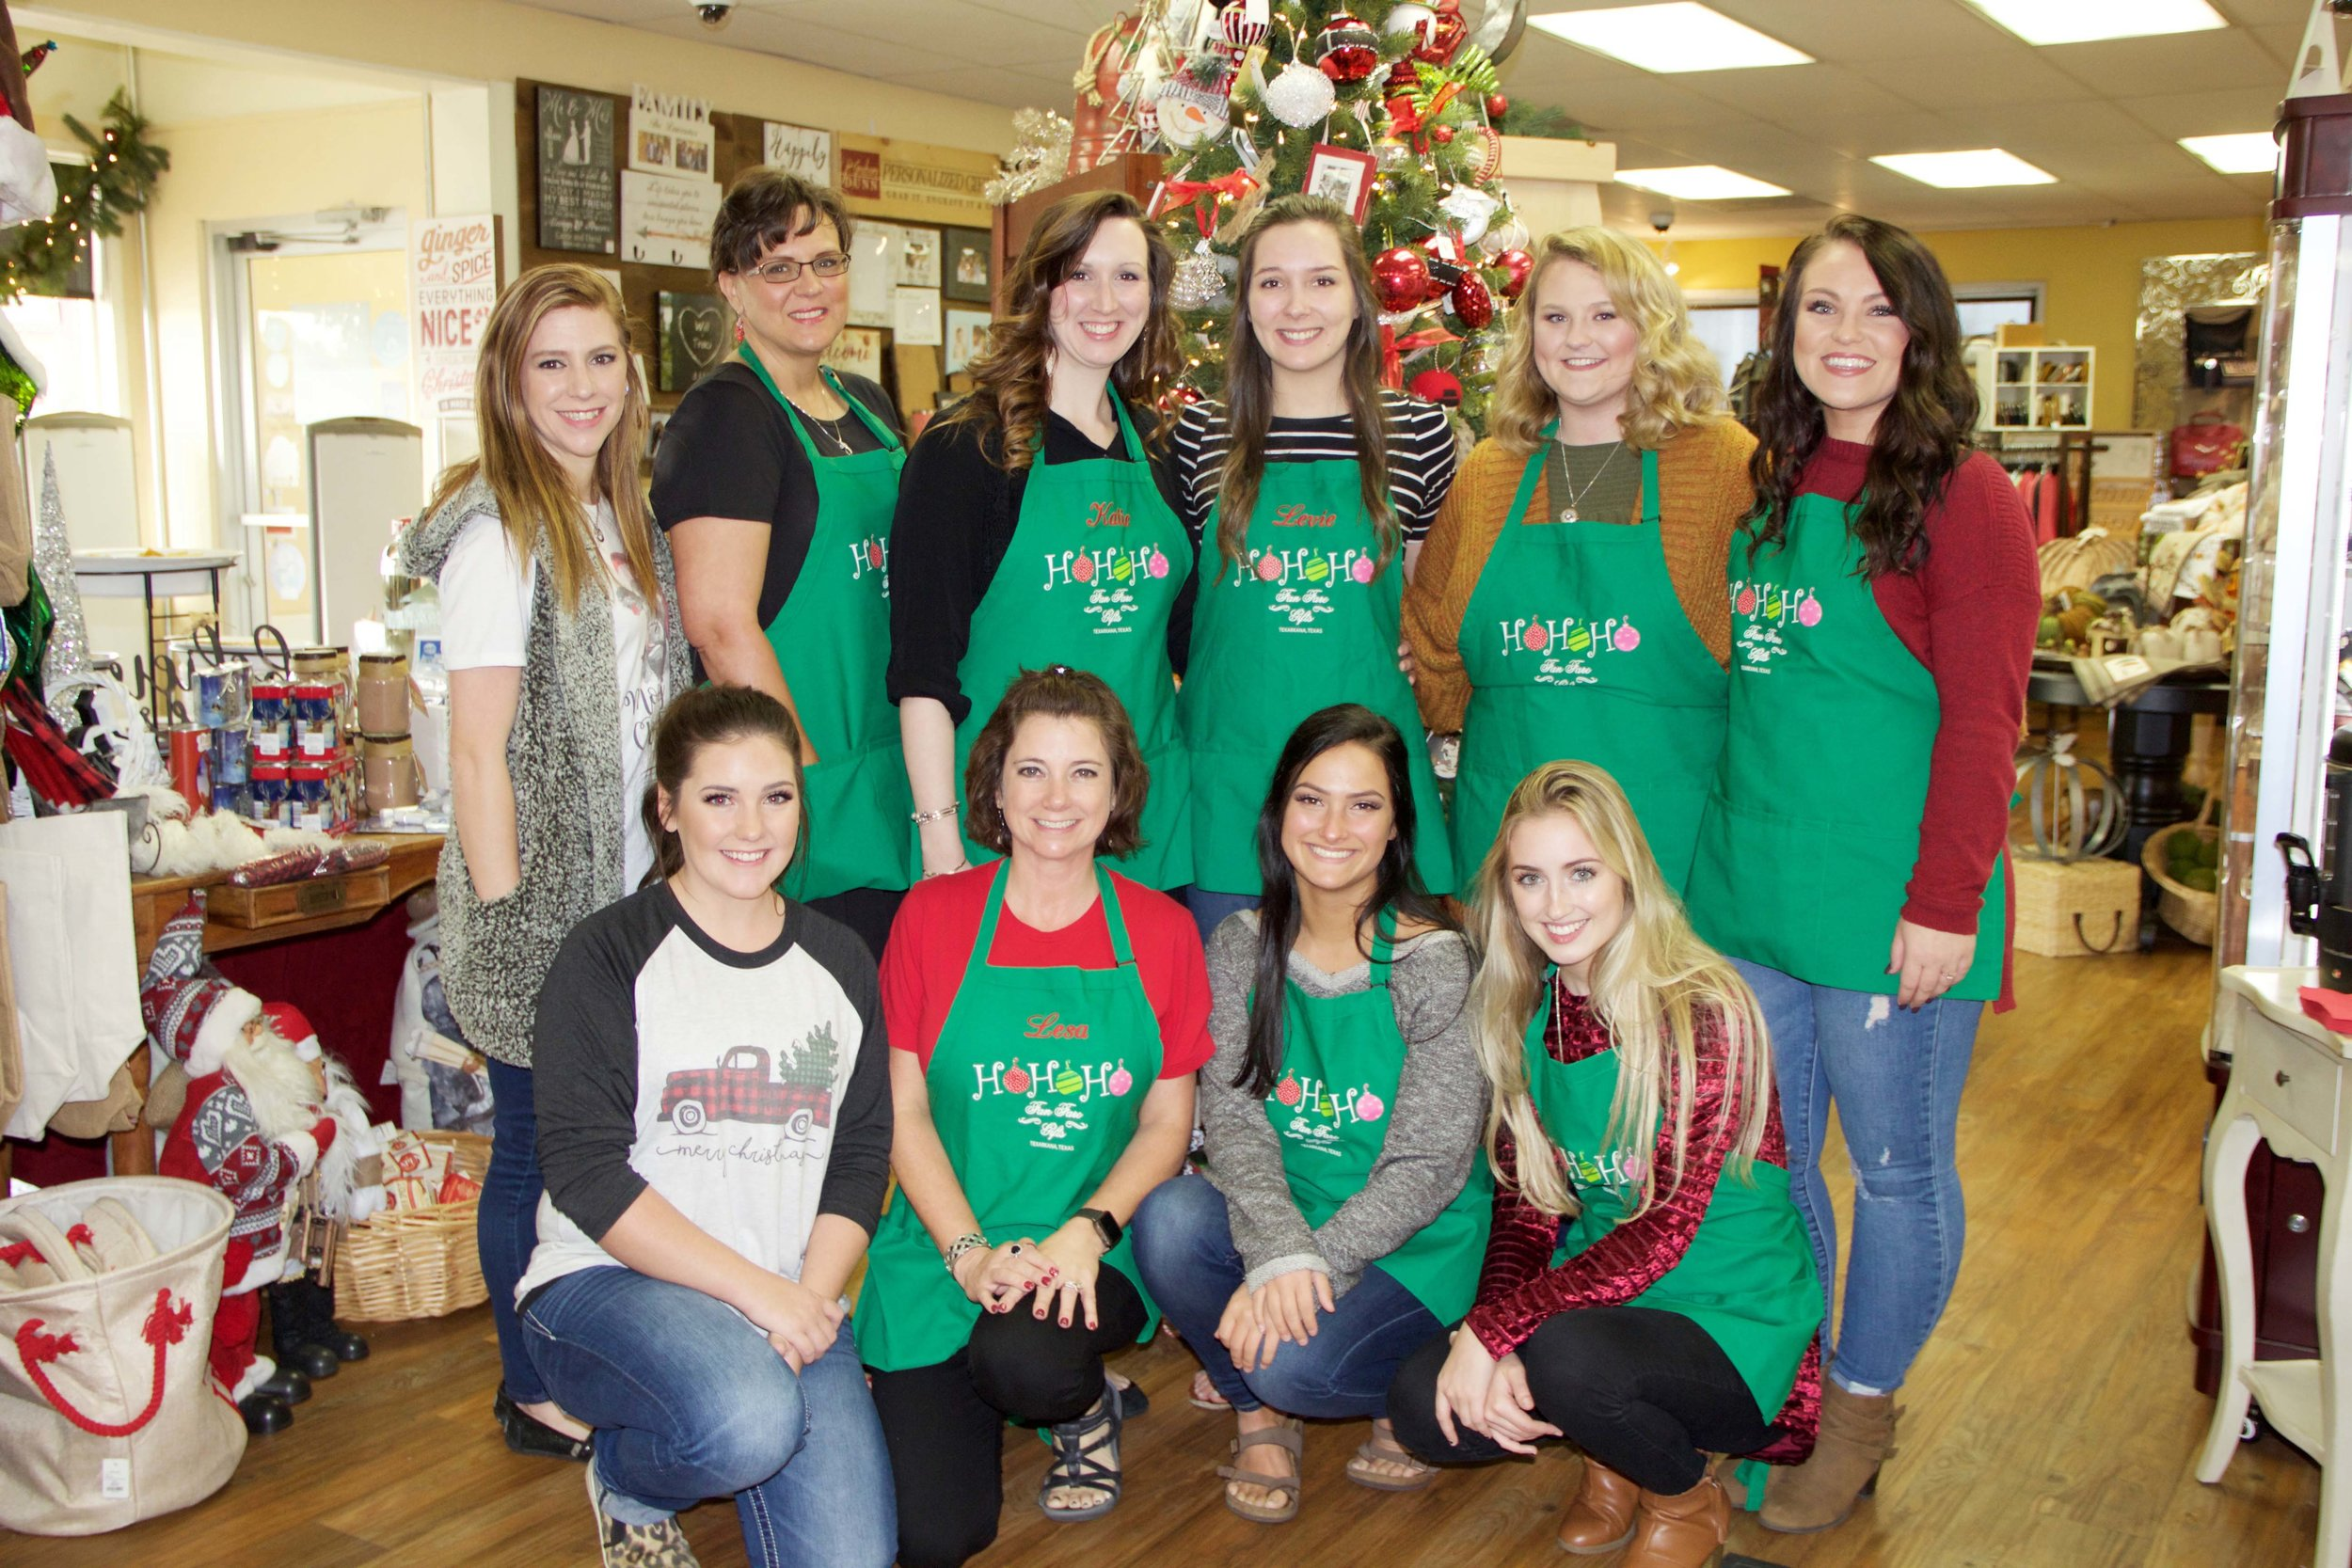 (front row, left to right) Courtney Stewart, Lesa Asbille, Kasidy Bunger and Hannah Rankin; (standing) Kara Holden, Angela Purifoy, Katie Shepherd, Levie Gates, Alex Kimbrough and Tori Morton